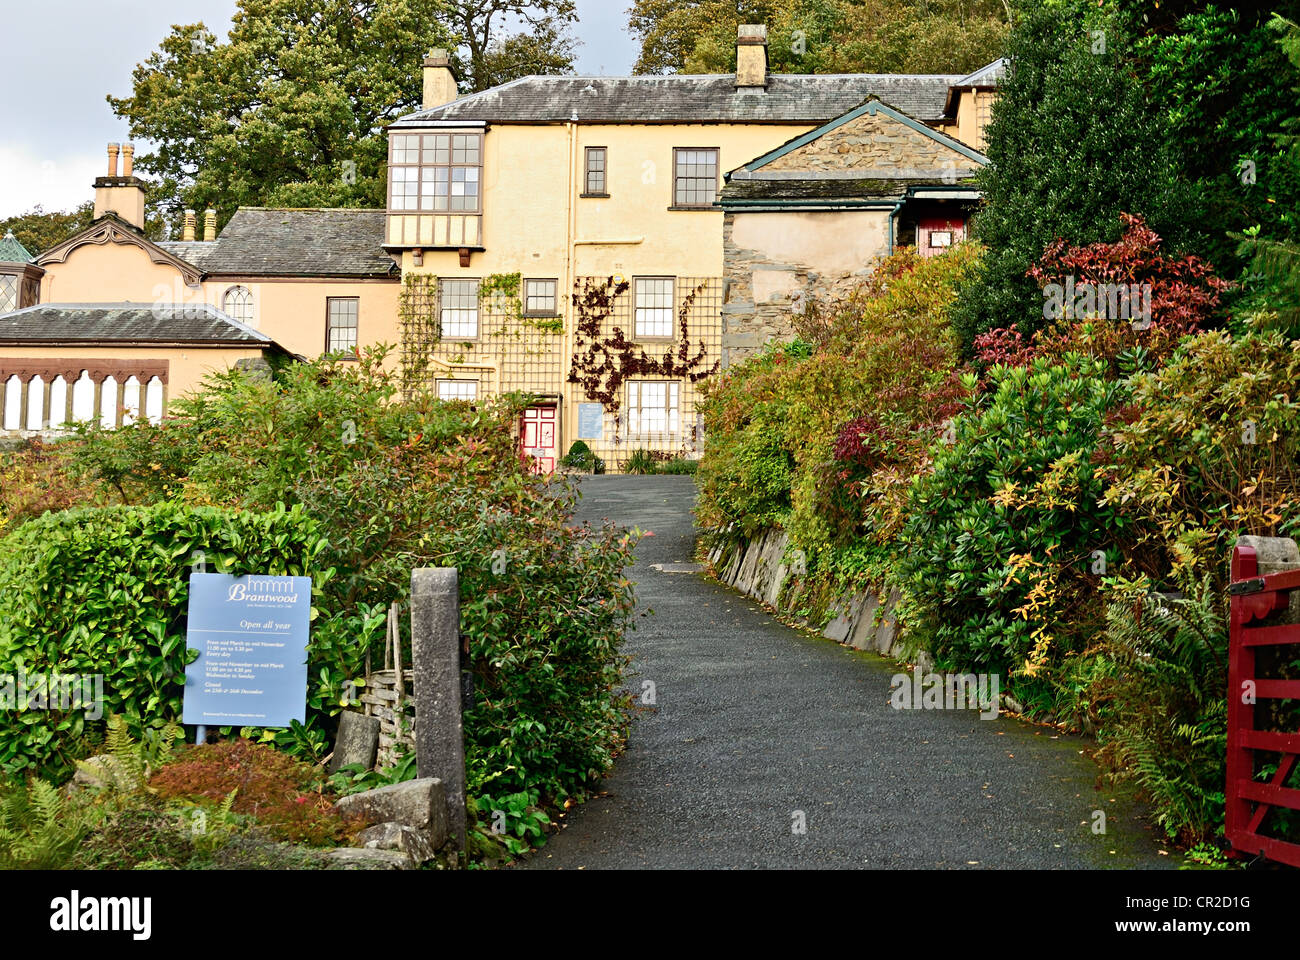 Brantwood House - Stock Image